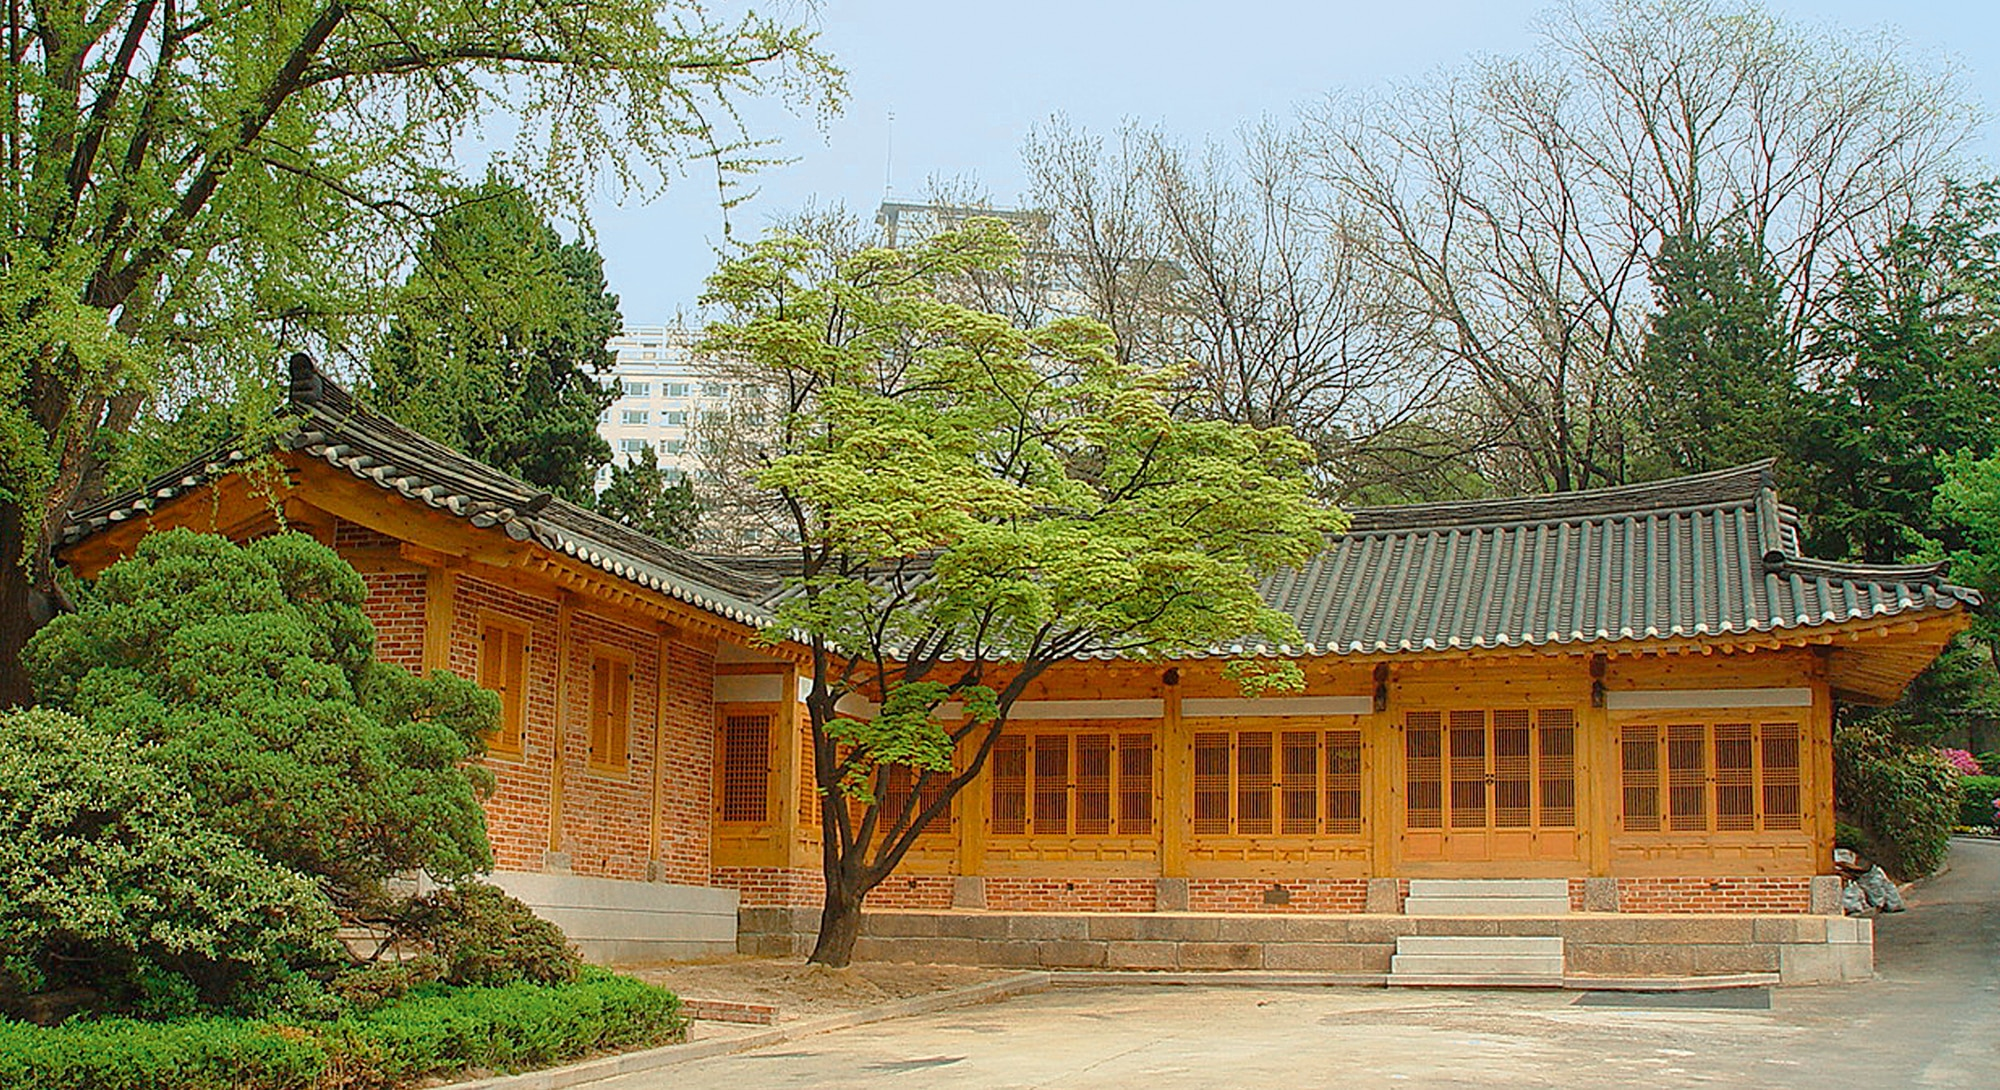 Photo showing the Seoul Old American Legation, built in 1883 and now used as a guest house, is an exceptionally well-preserved example of traditional Korean residential architecture that illustrates the long history of Korean-American friendship. [Department of State/OBO]